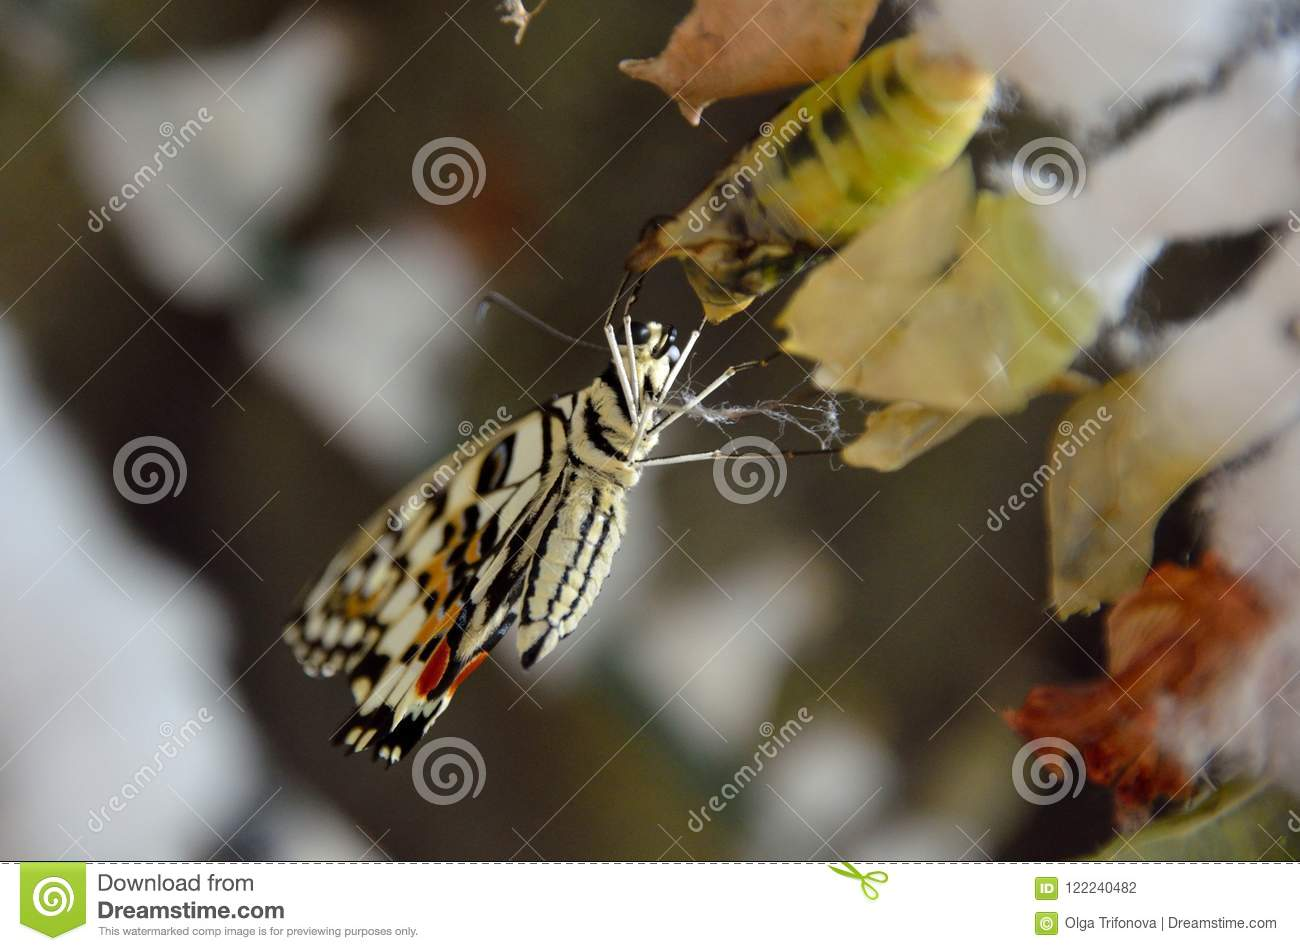 Life cycle of butterflies. Butterfly chrysalis